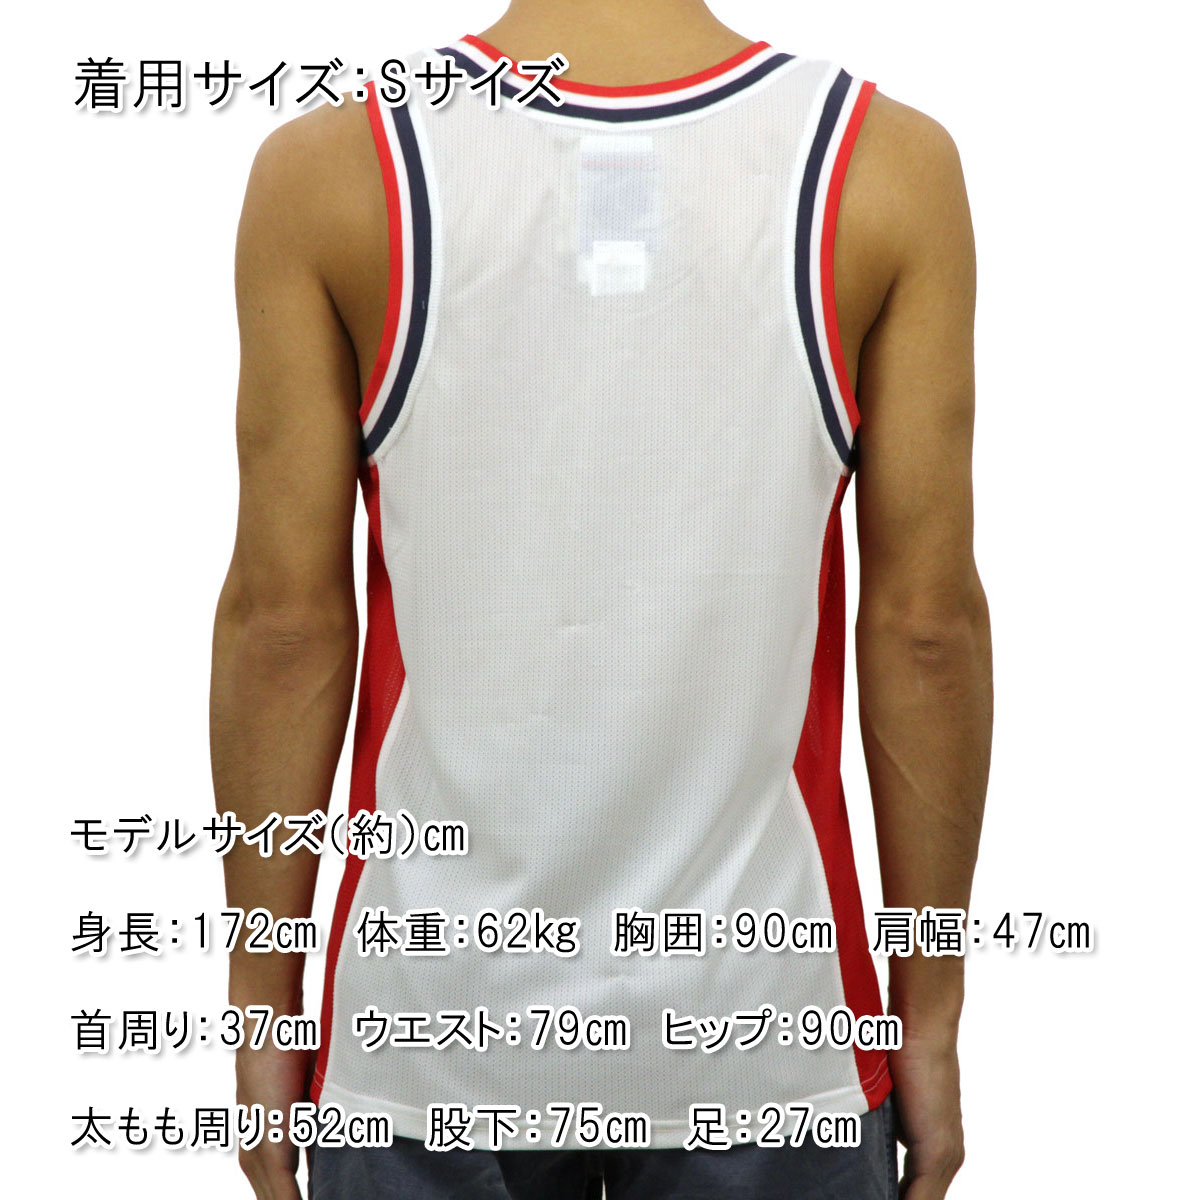 チャンピオン CHAMPION 正規品 メンズ タンクトップ TANK TOP T8831P City Mesh Jersey 0G6-WHITE/TEAMREDSCARLET